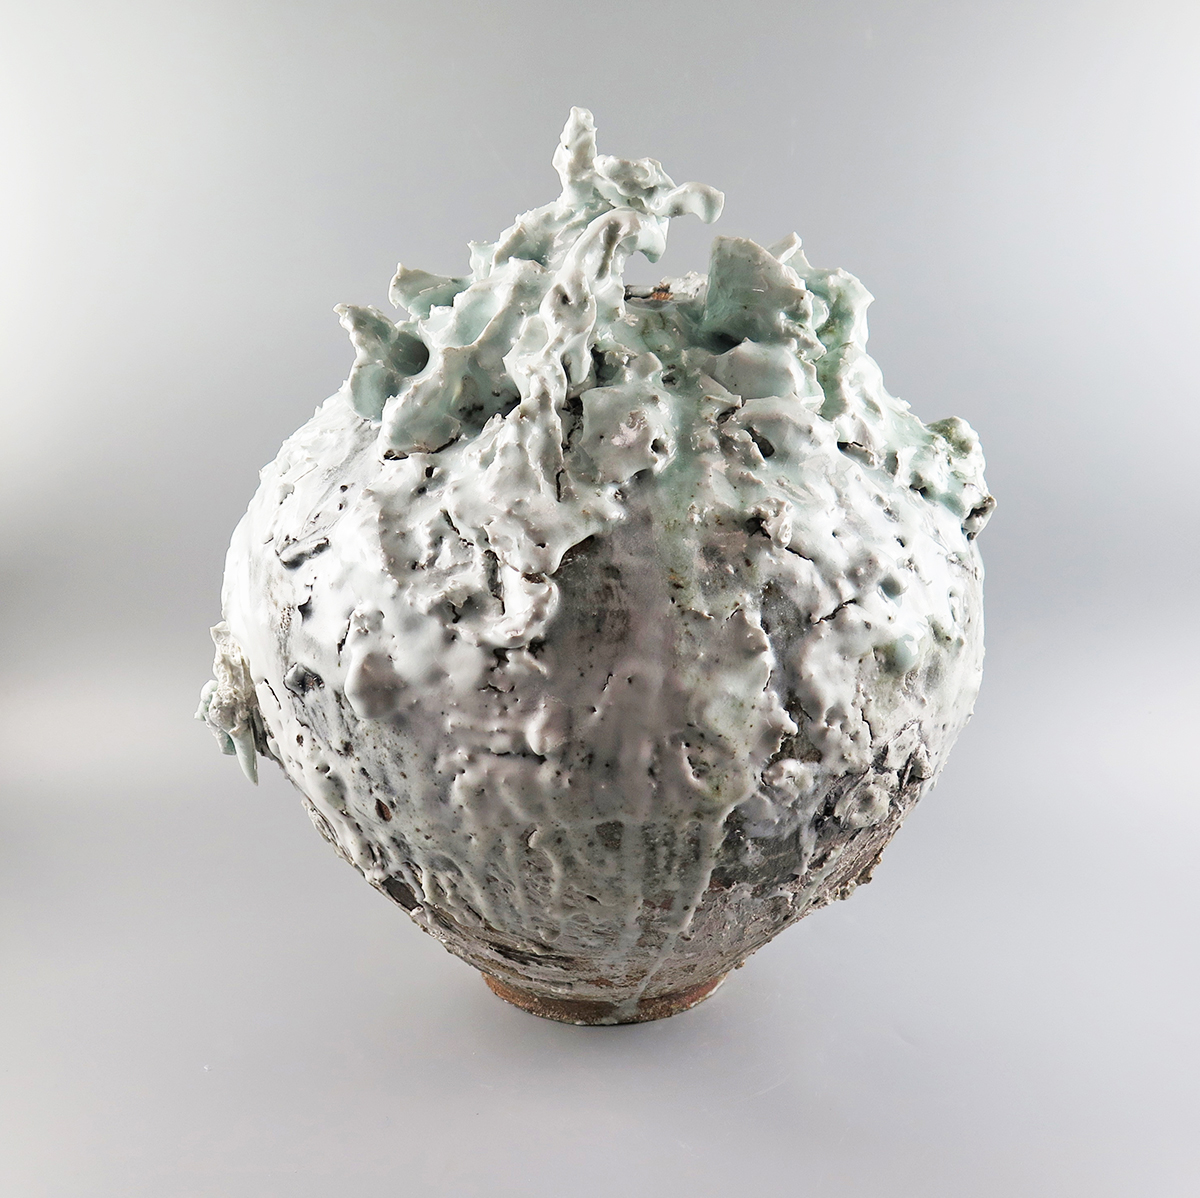 Akiko Hirai 1. Moon Jar Large height 51cm x diameter 50cm front view SOLD